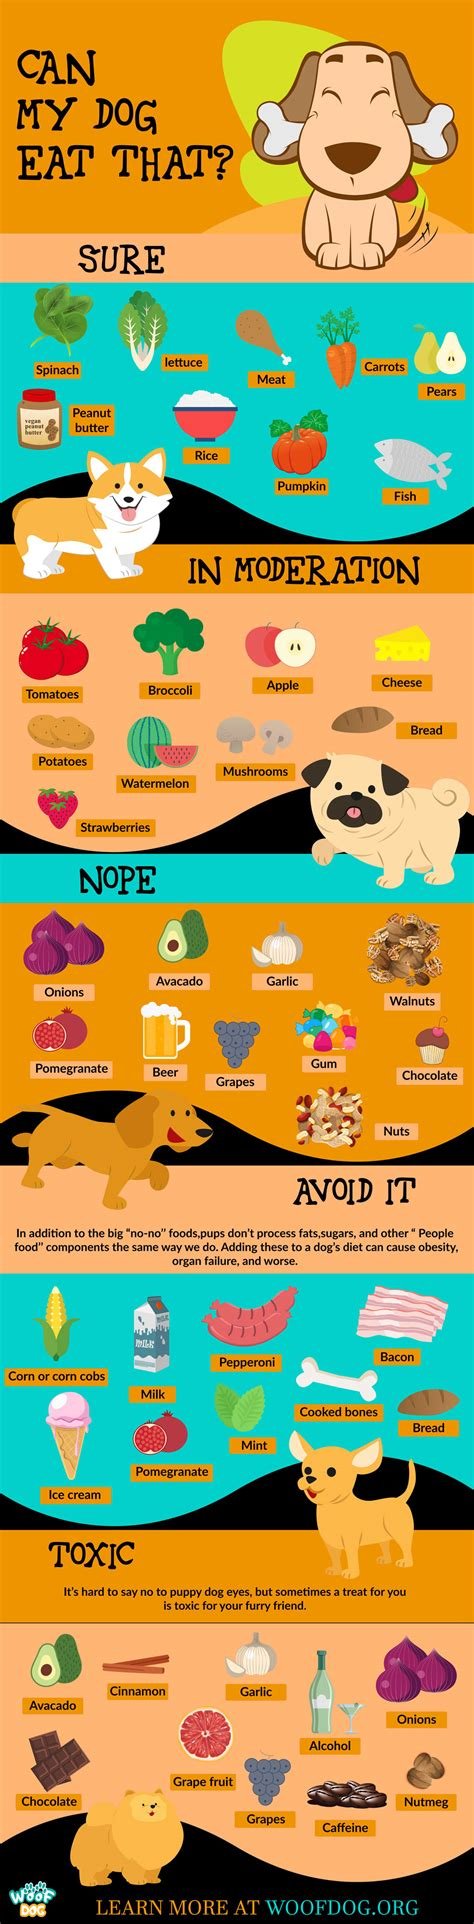 fruits dogs can eat 30 human foods dogs can and can t eat 11 toxic and dangerous